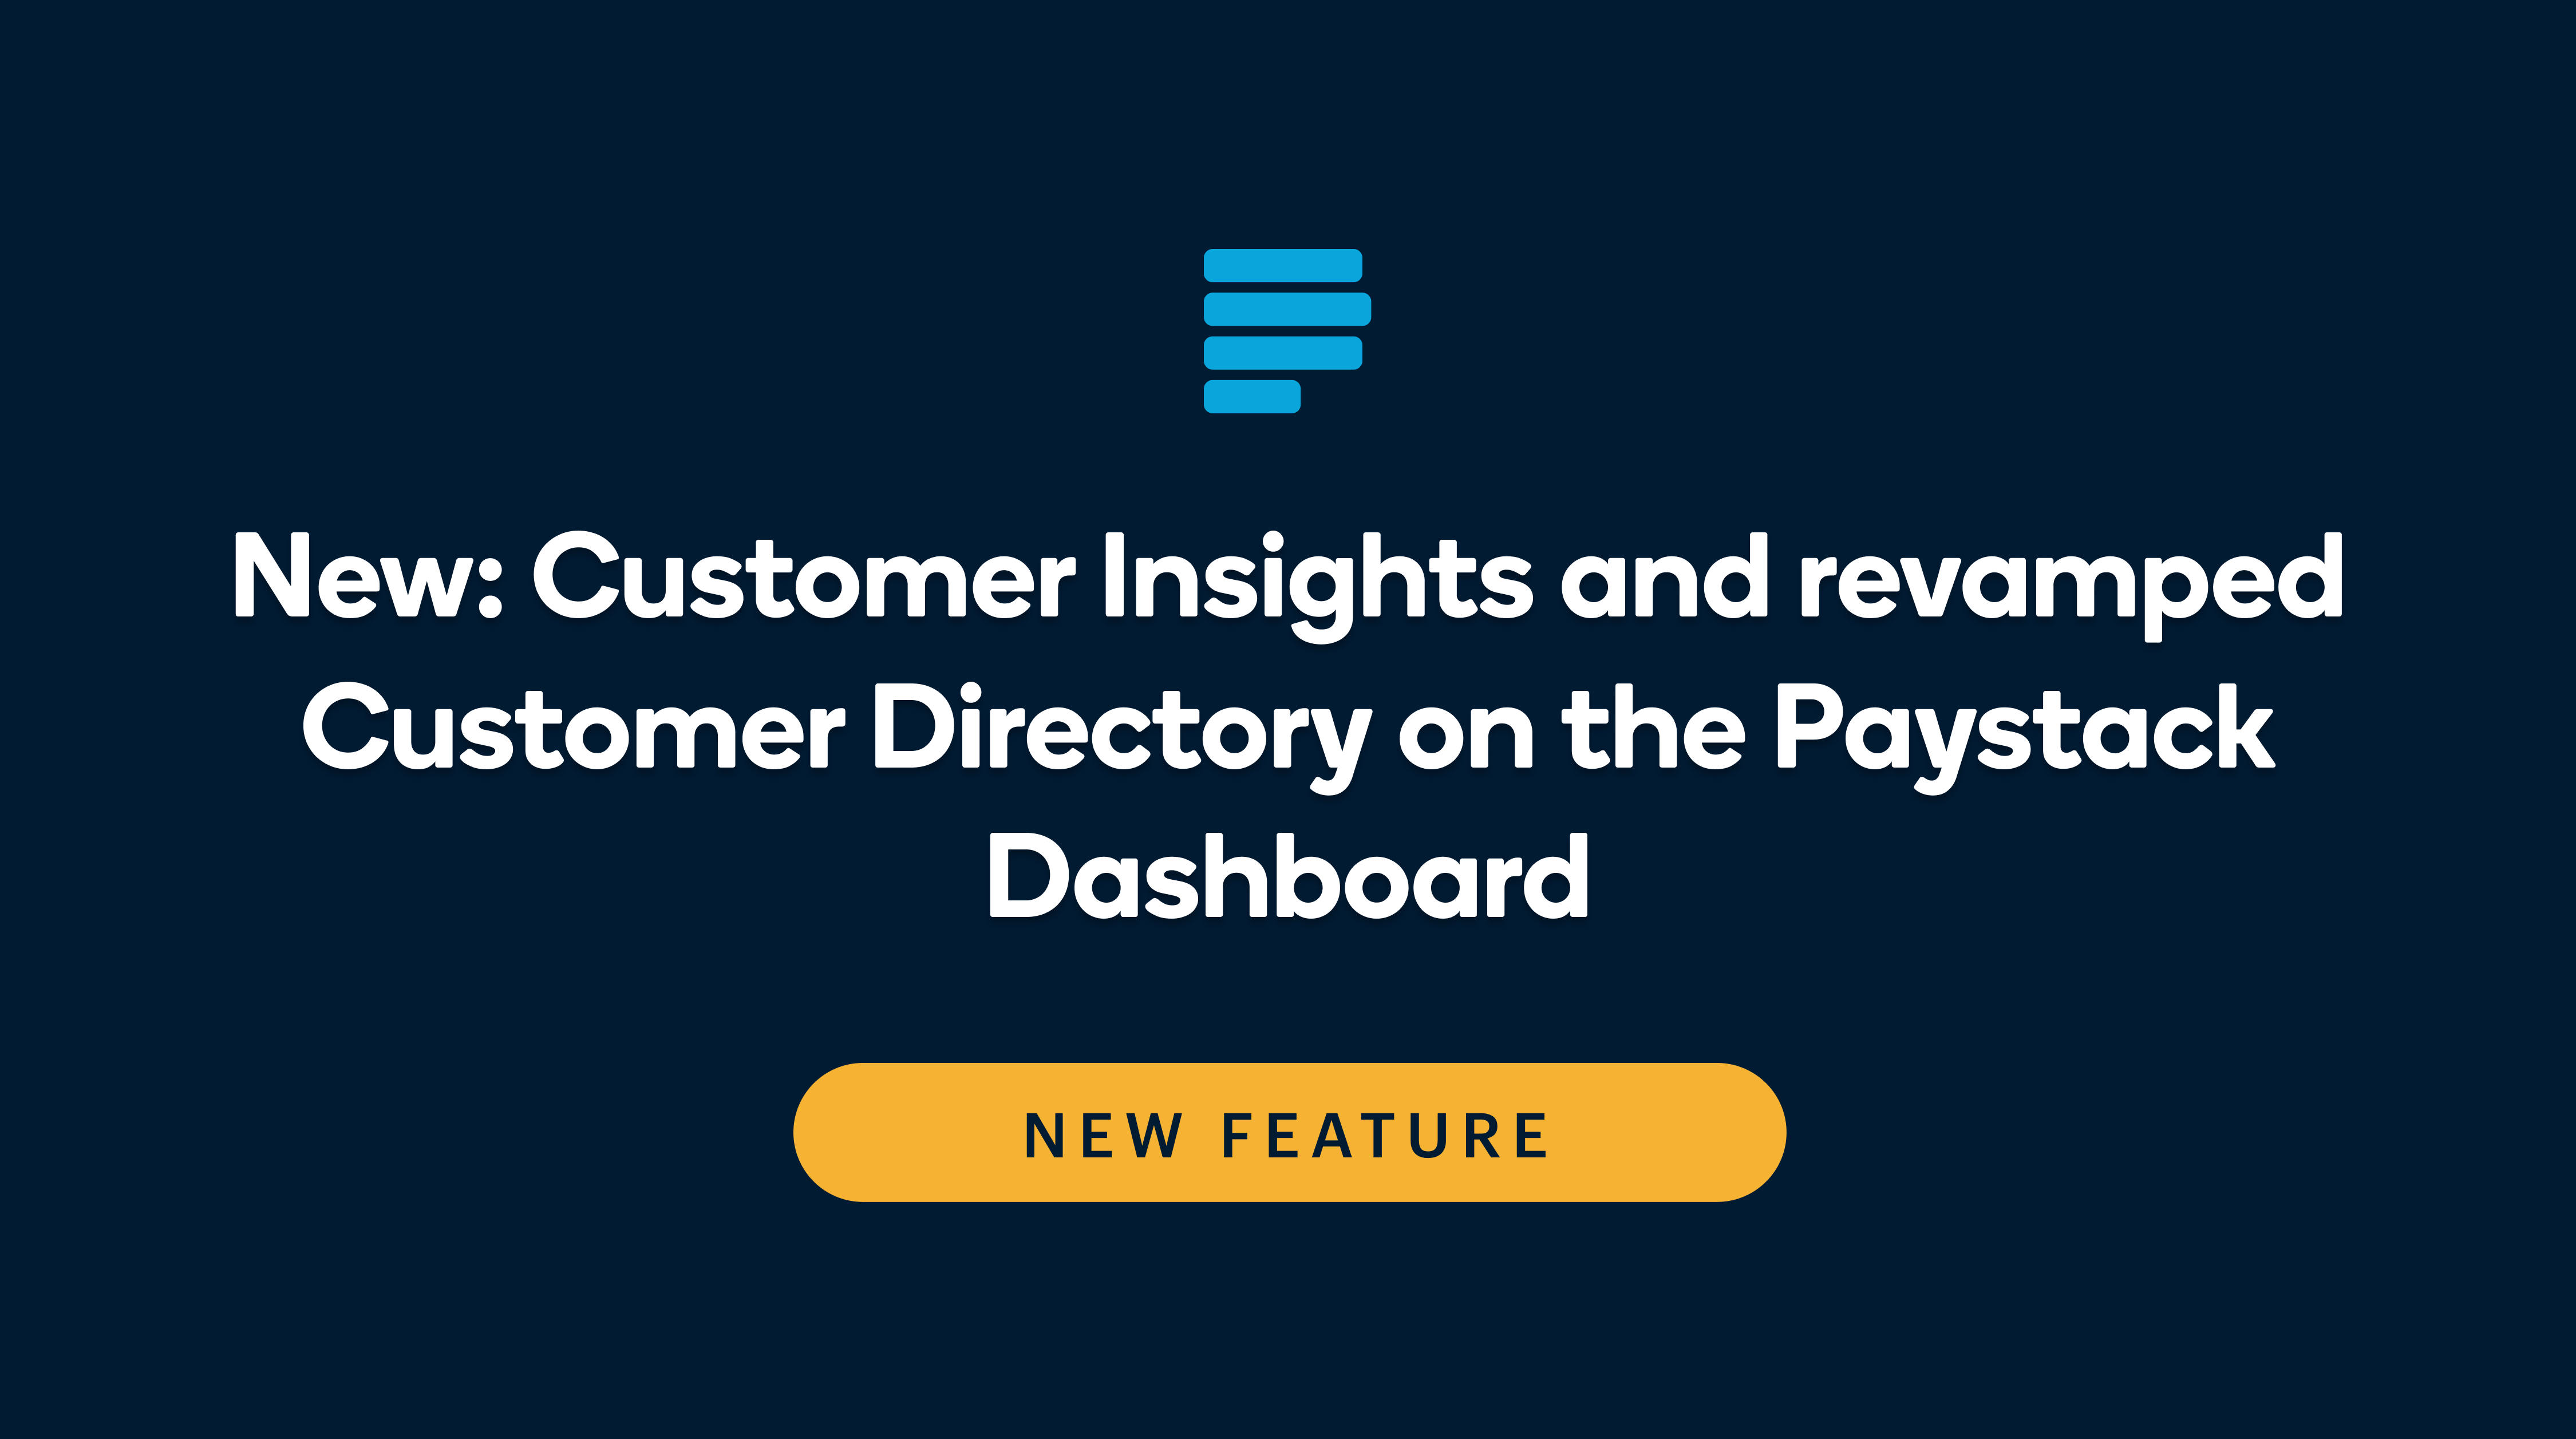 Customer Insights And Customer Directory